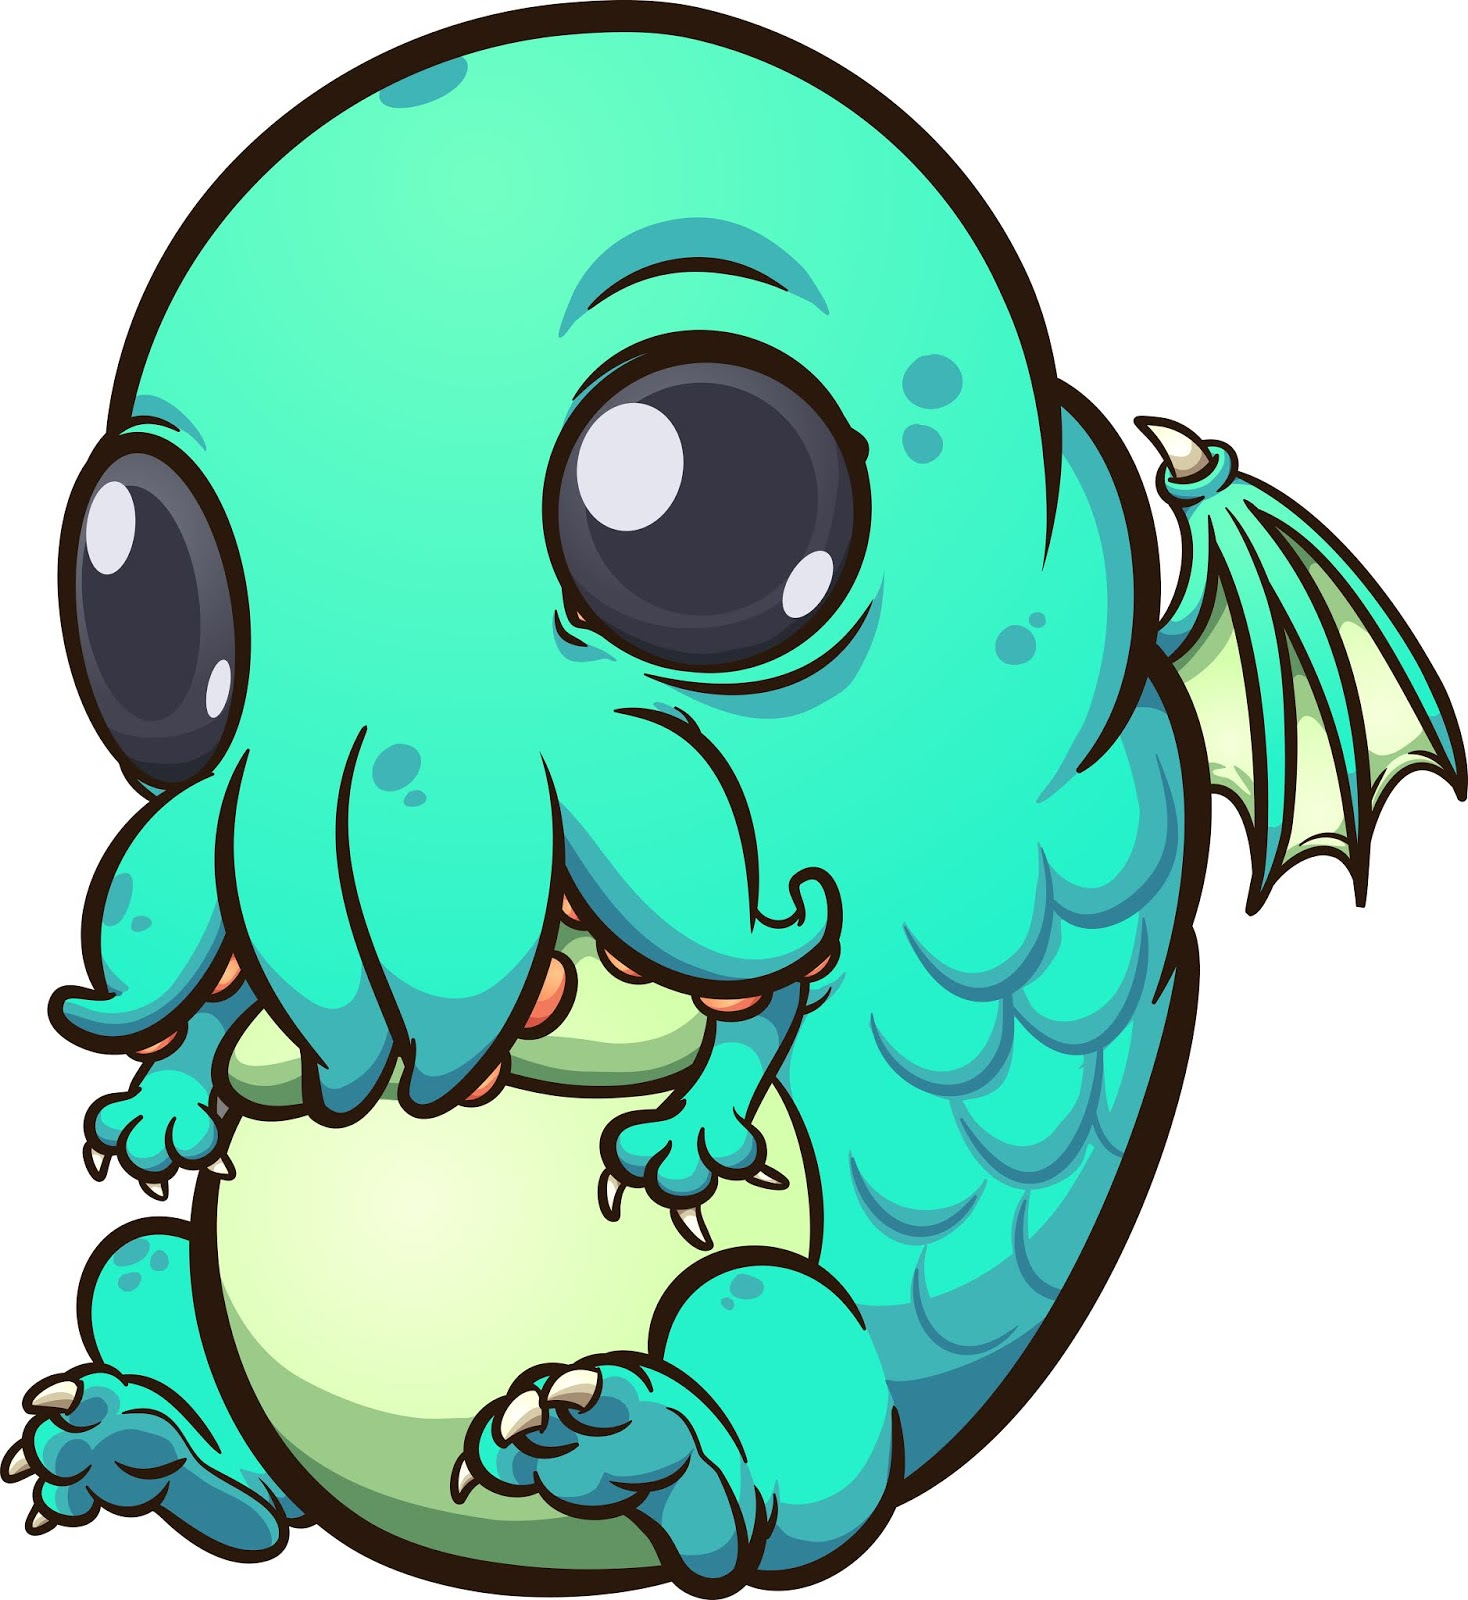 Baby Cthulhu Free Download Vector CDR, AI, EPS and PNG Formats